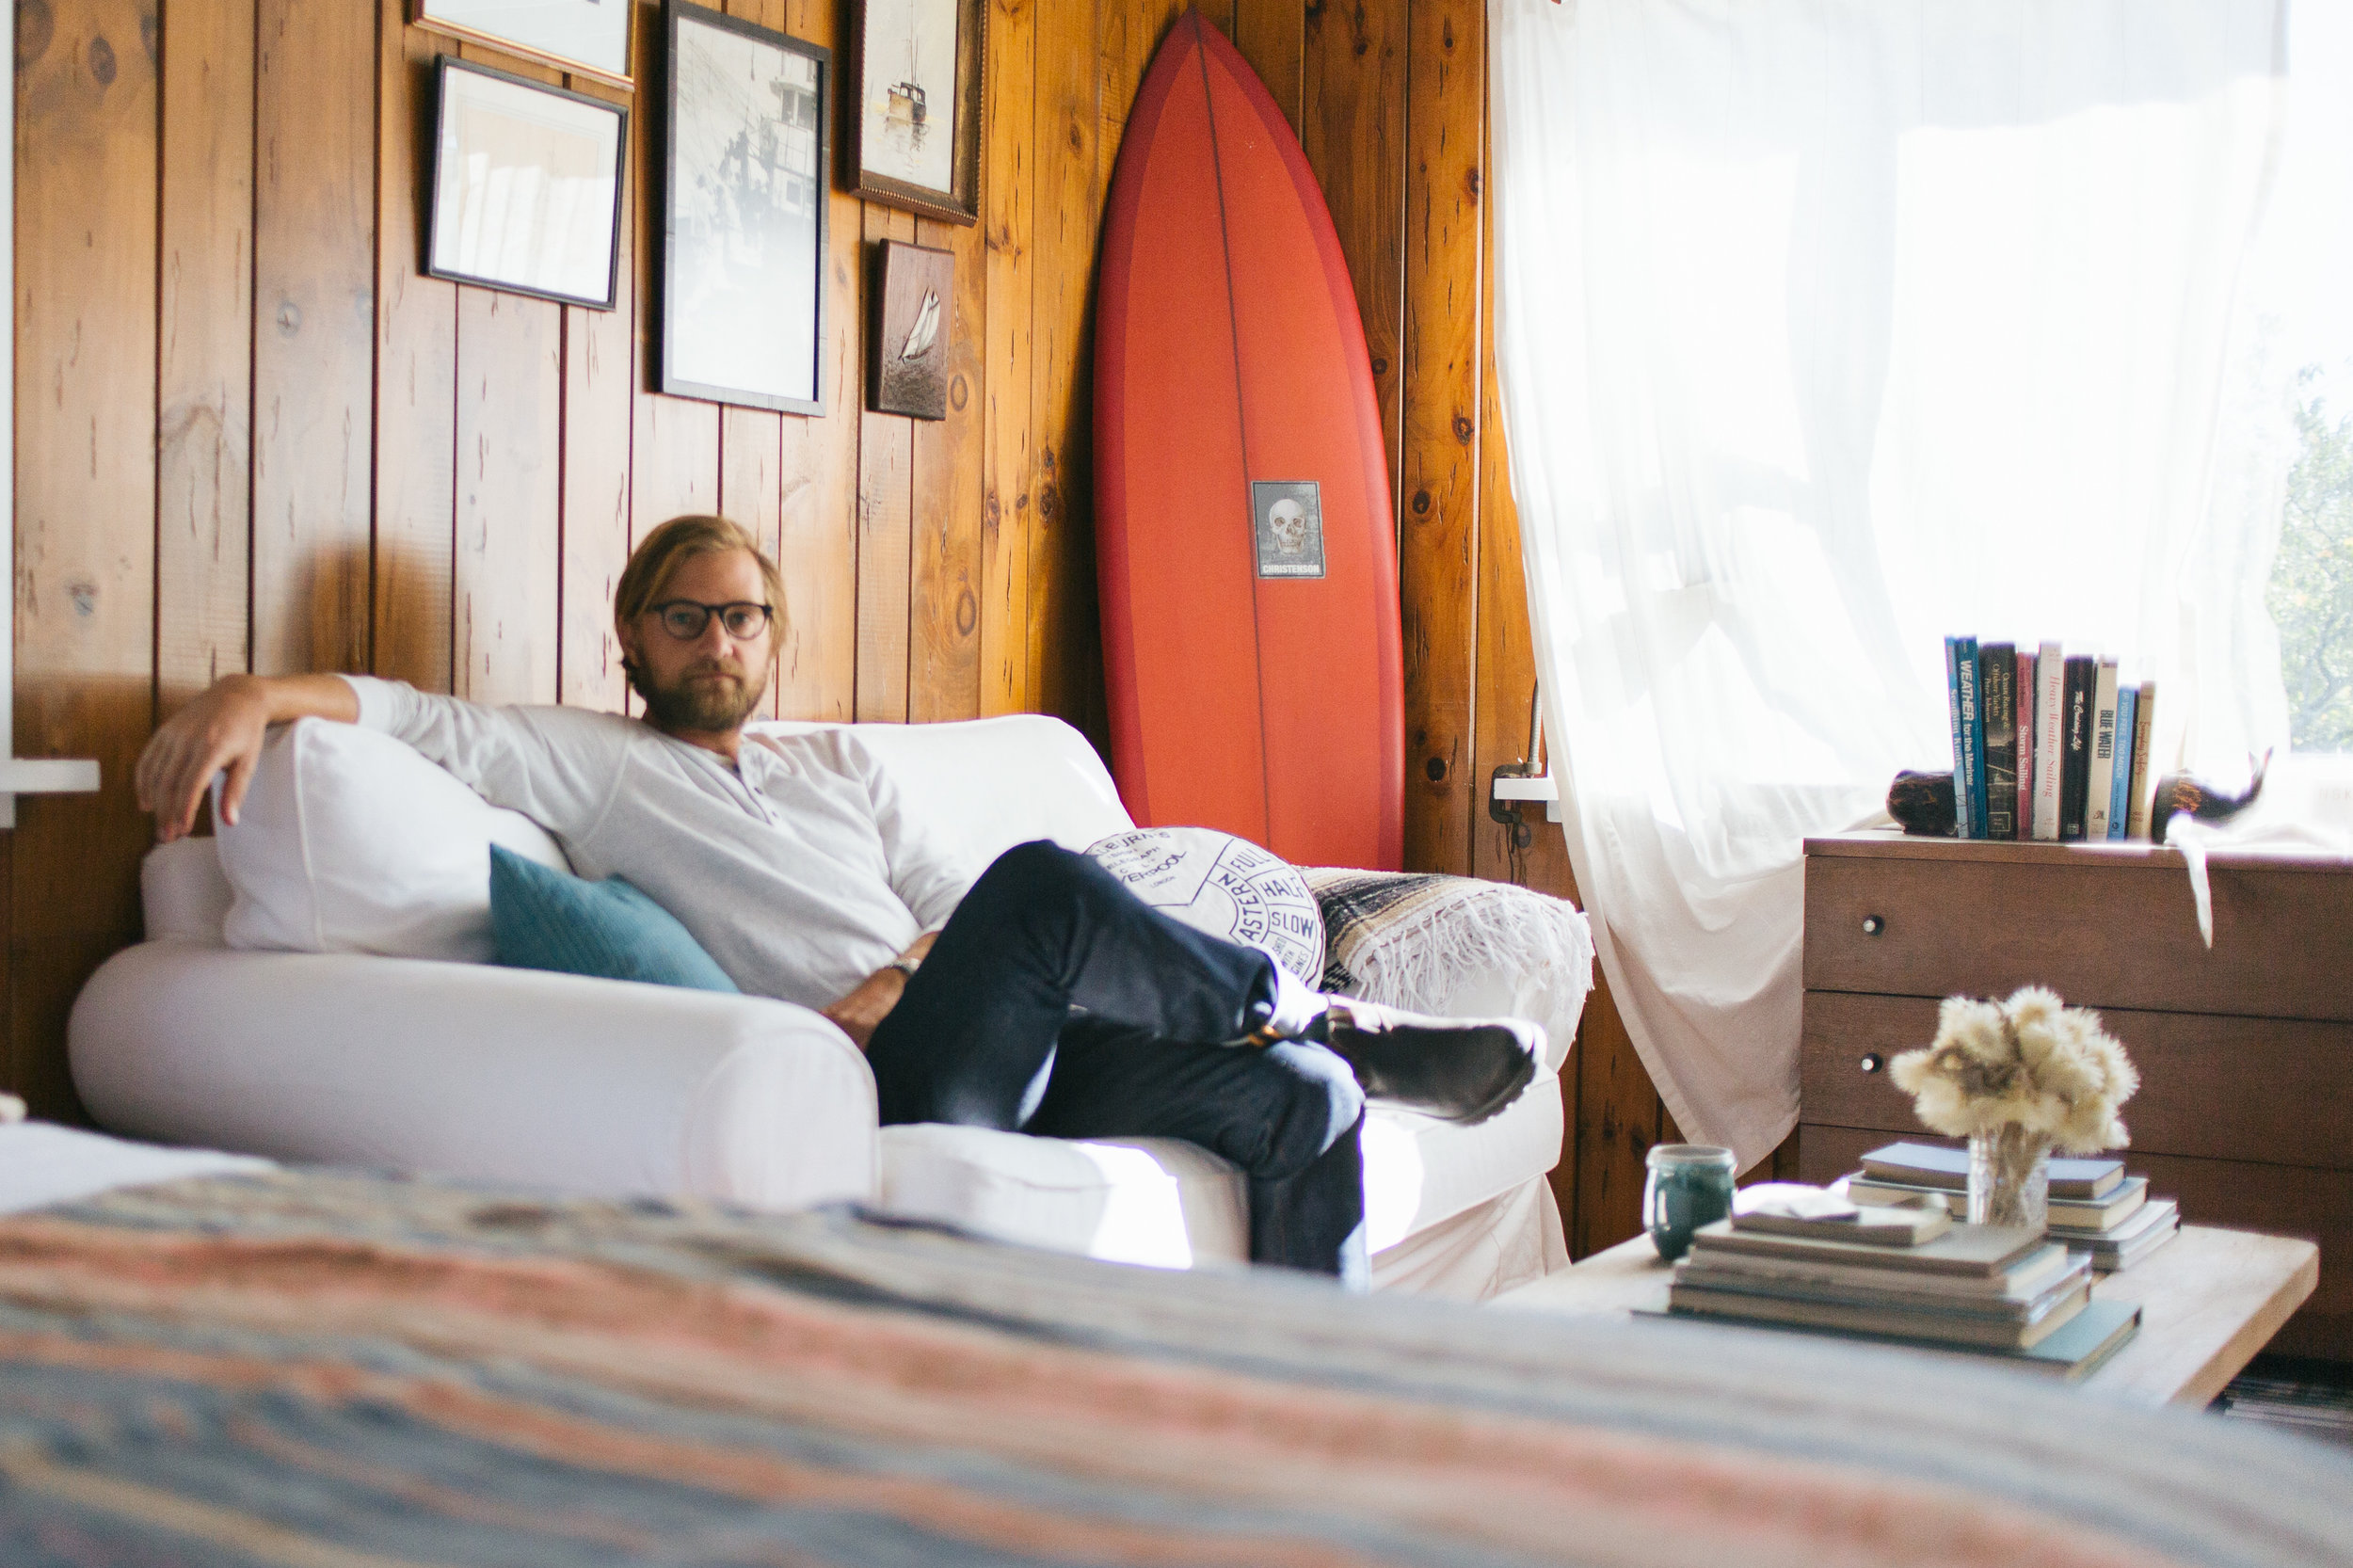 Huckberry Journal  At home with Mikey DeTemple